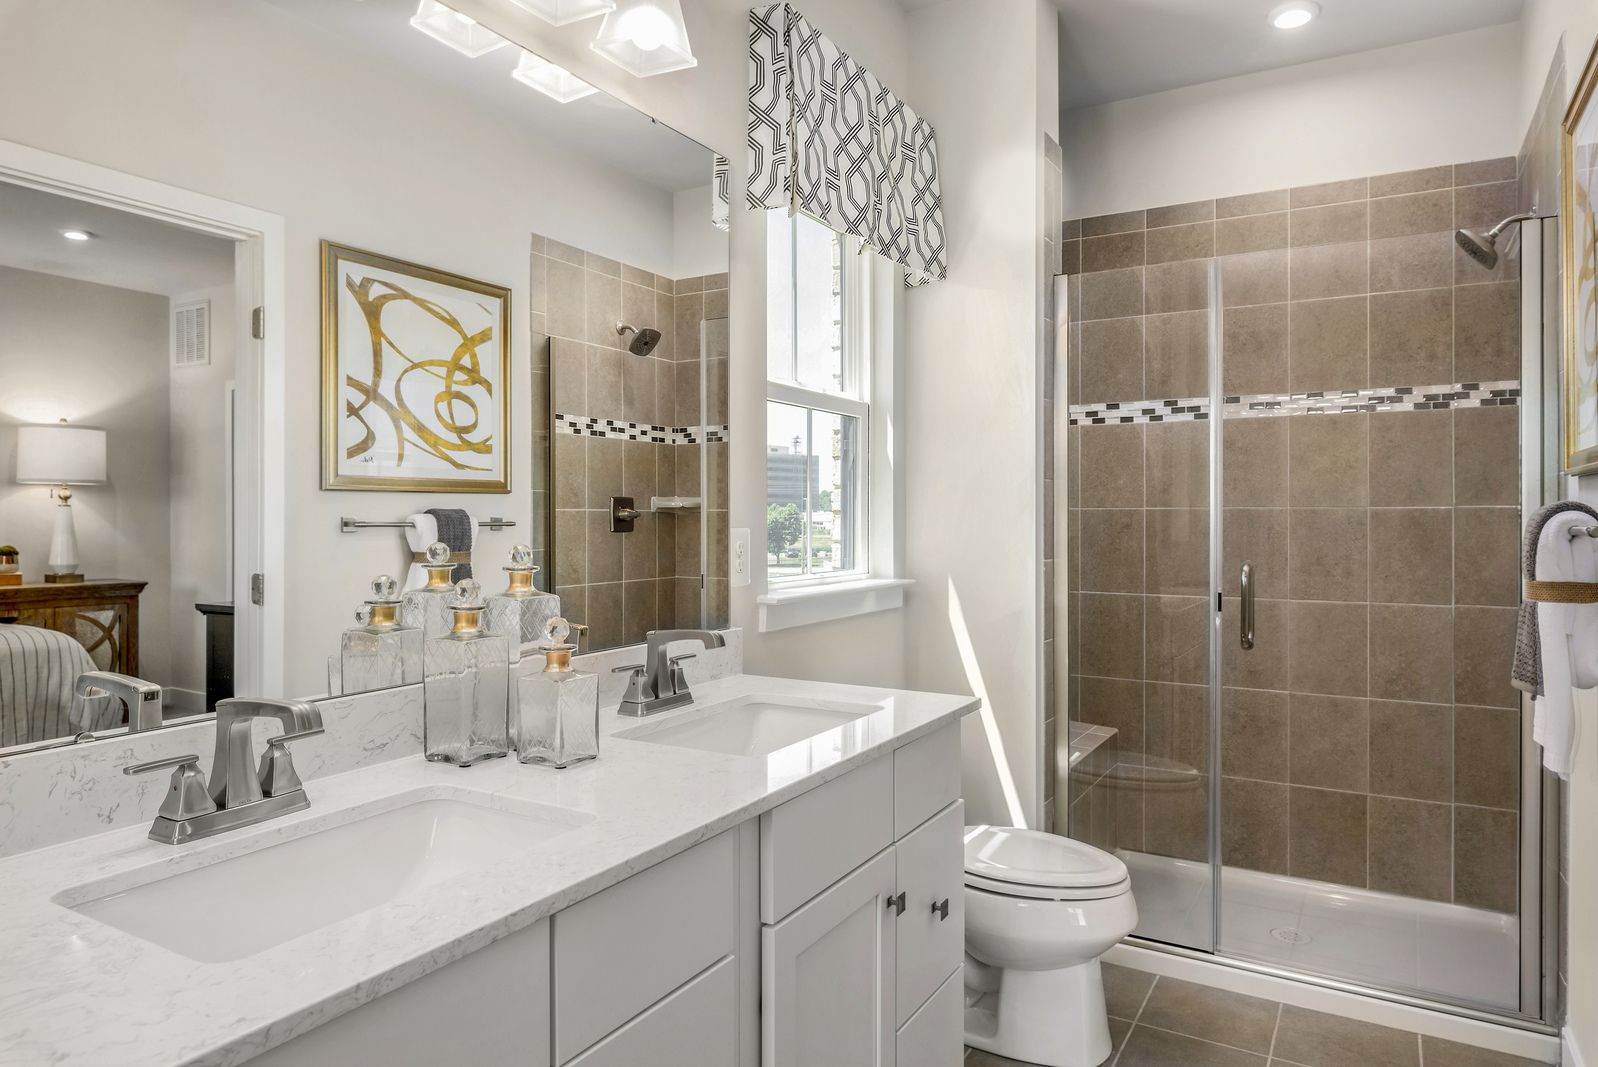 Bathroom featured in the Strauss By Ryan Homes in Philadelphia, NJ